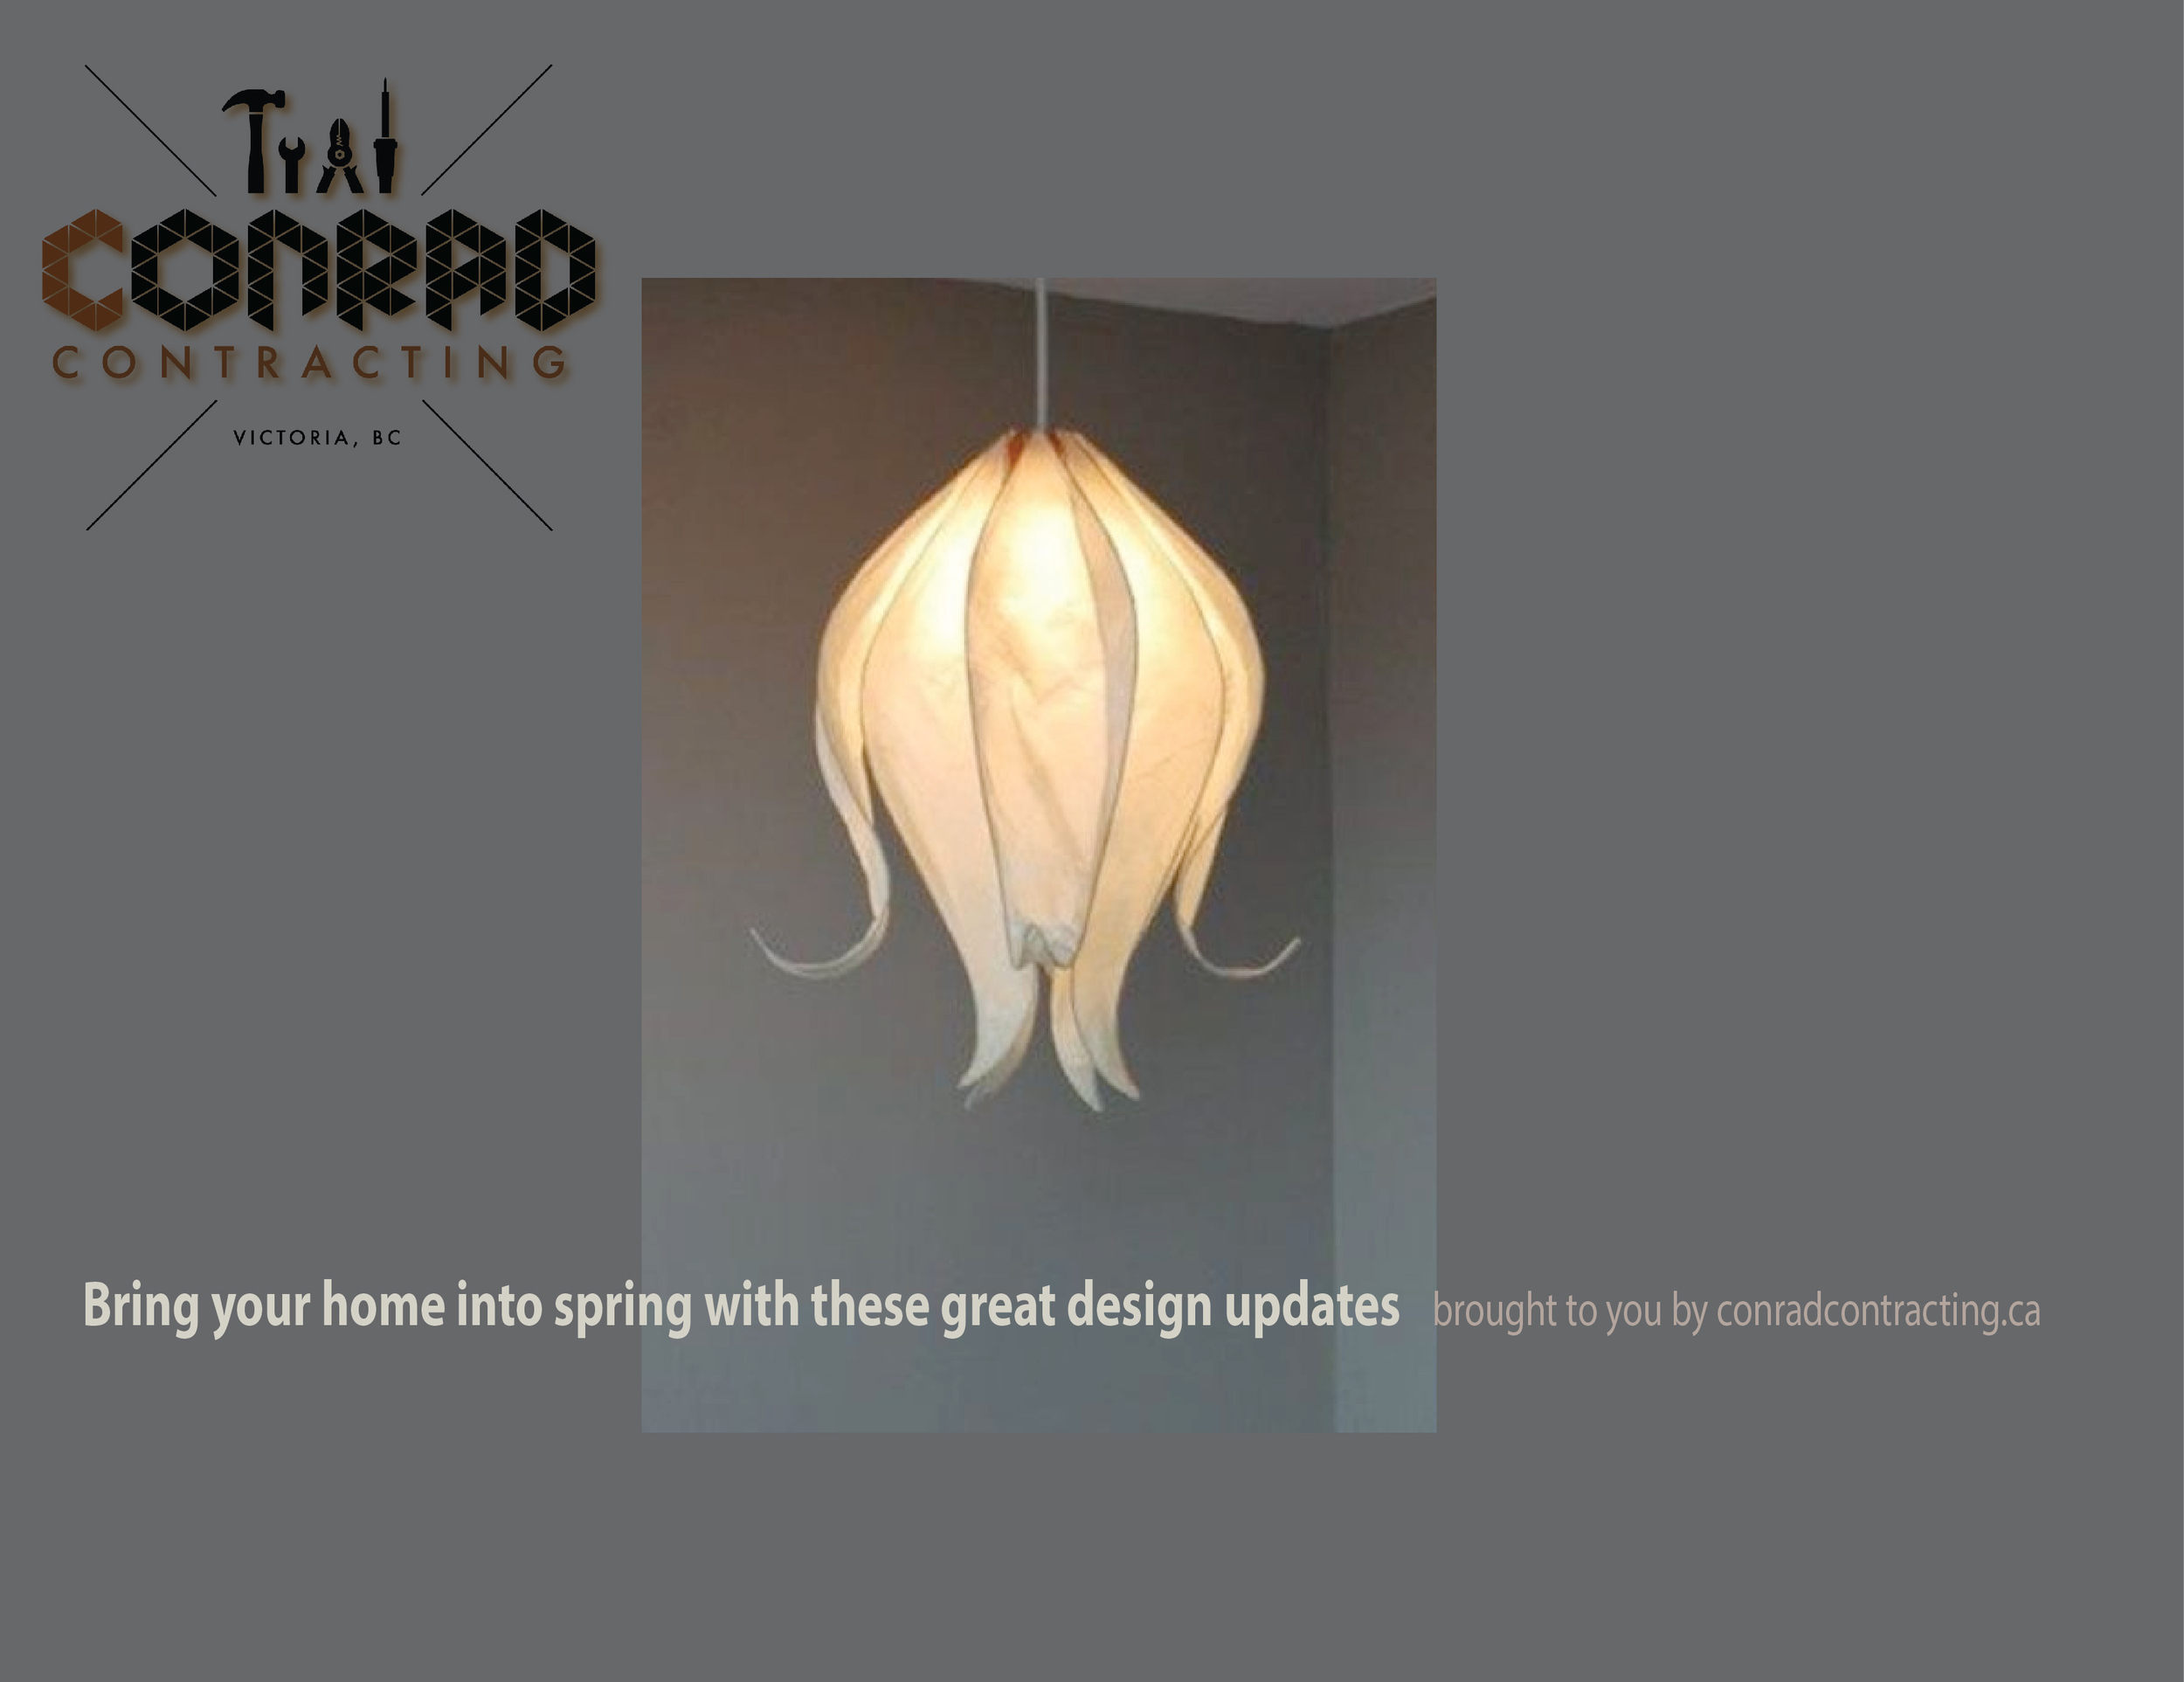 The floral inspired lampshade in this image is actually a DIY - Touch Of Nature In Decor: 25 Flower And Plant Inspired LampsCredit : https://www.pinterest.com/pin/515591857316180684/